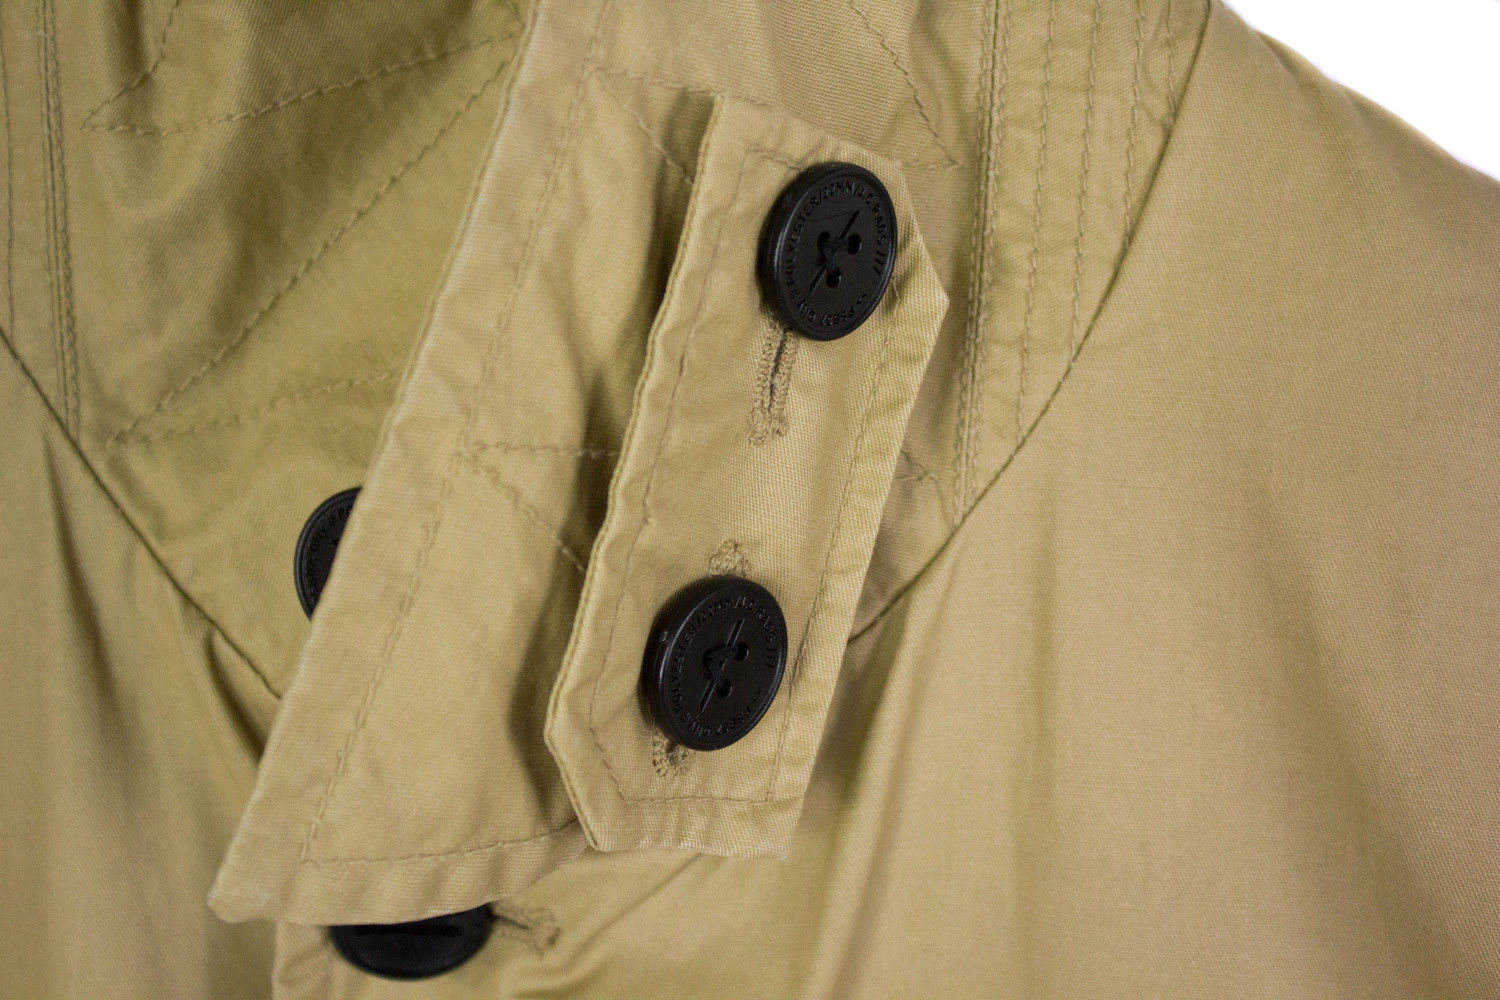 J.C. RAGS Men's Cotton Khaki Trench Coat, SIZE M - secondfirst